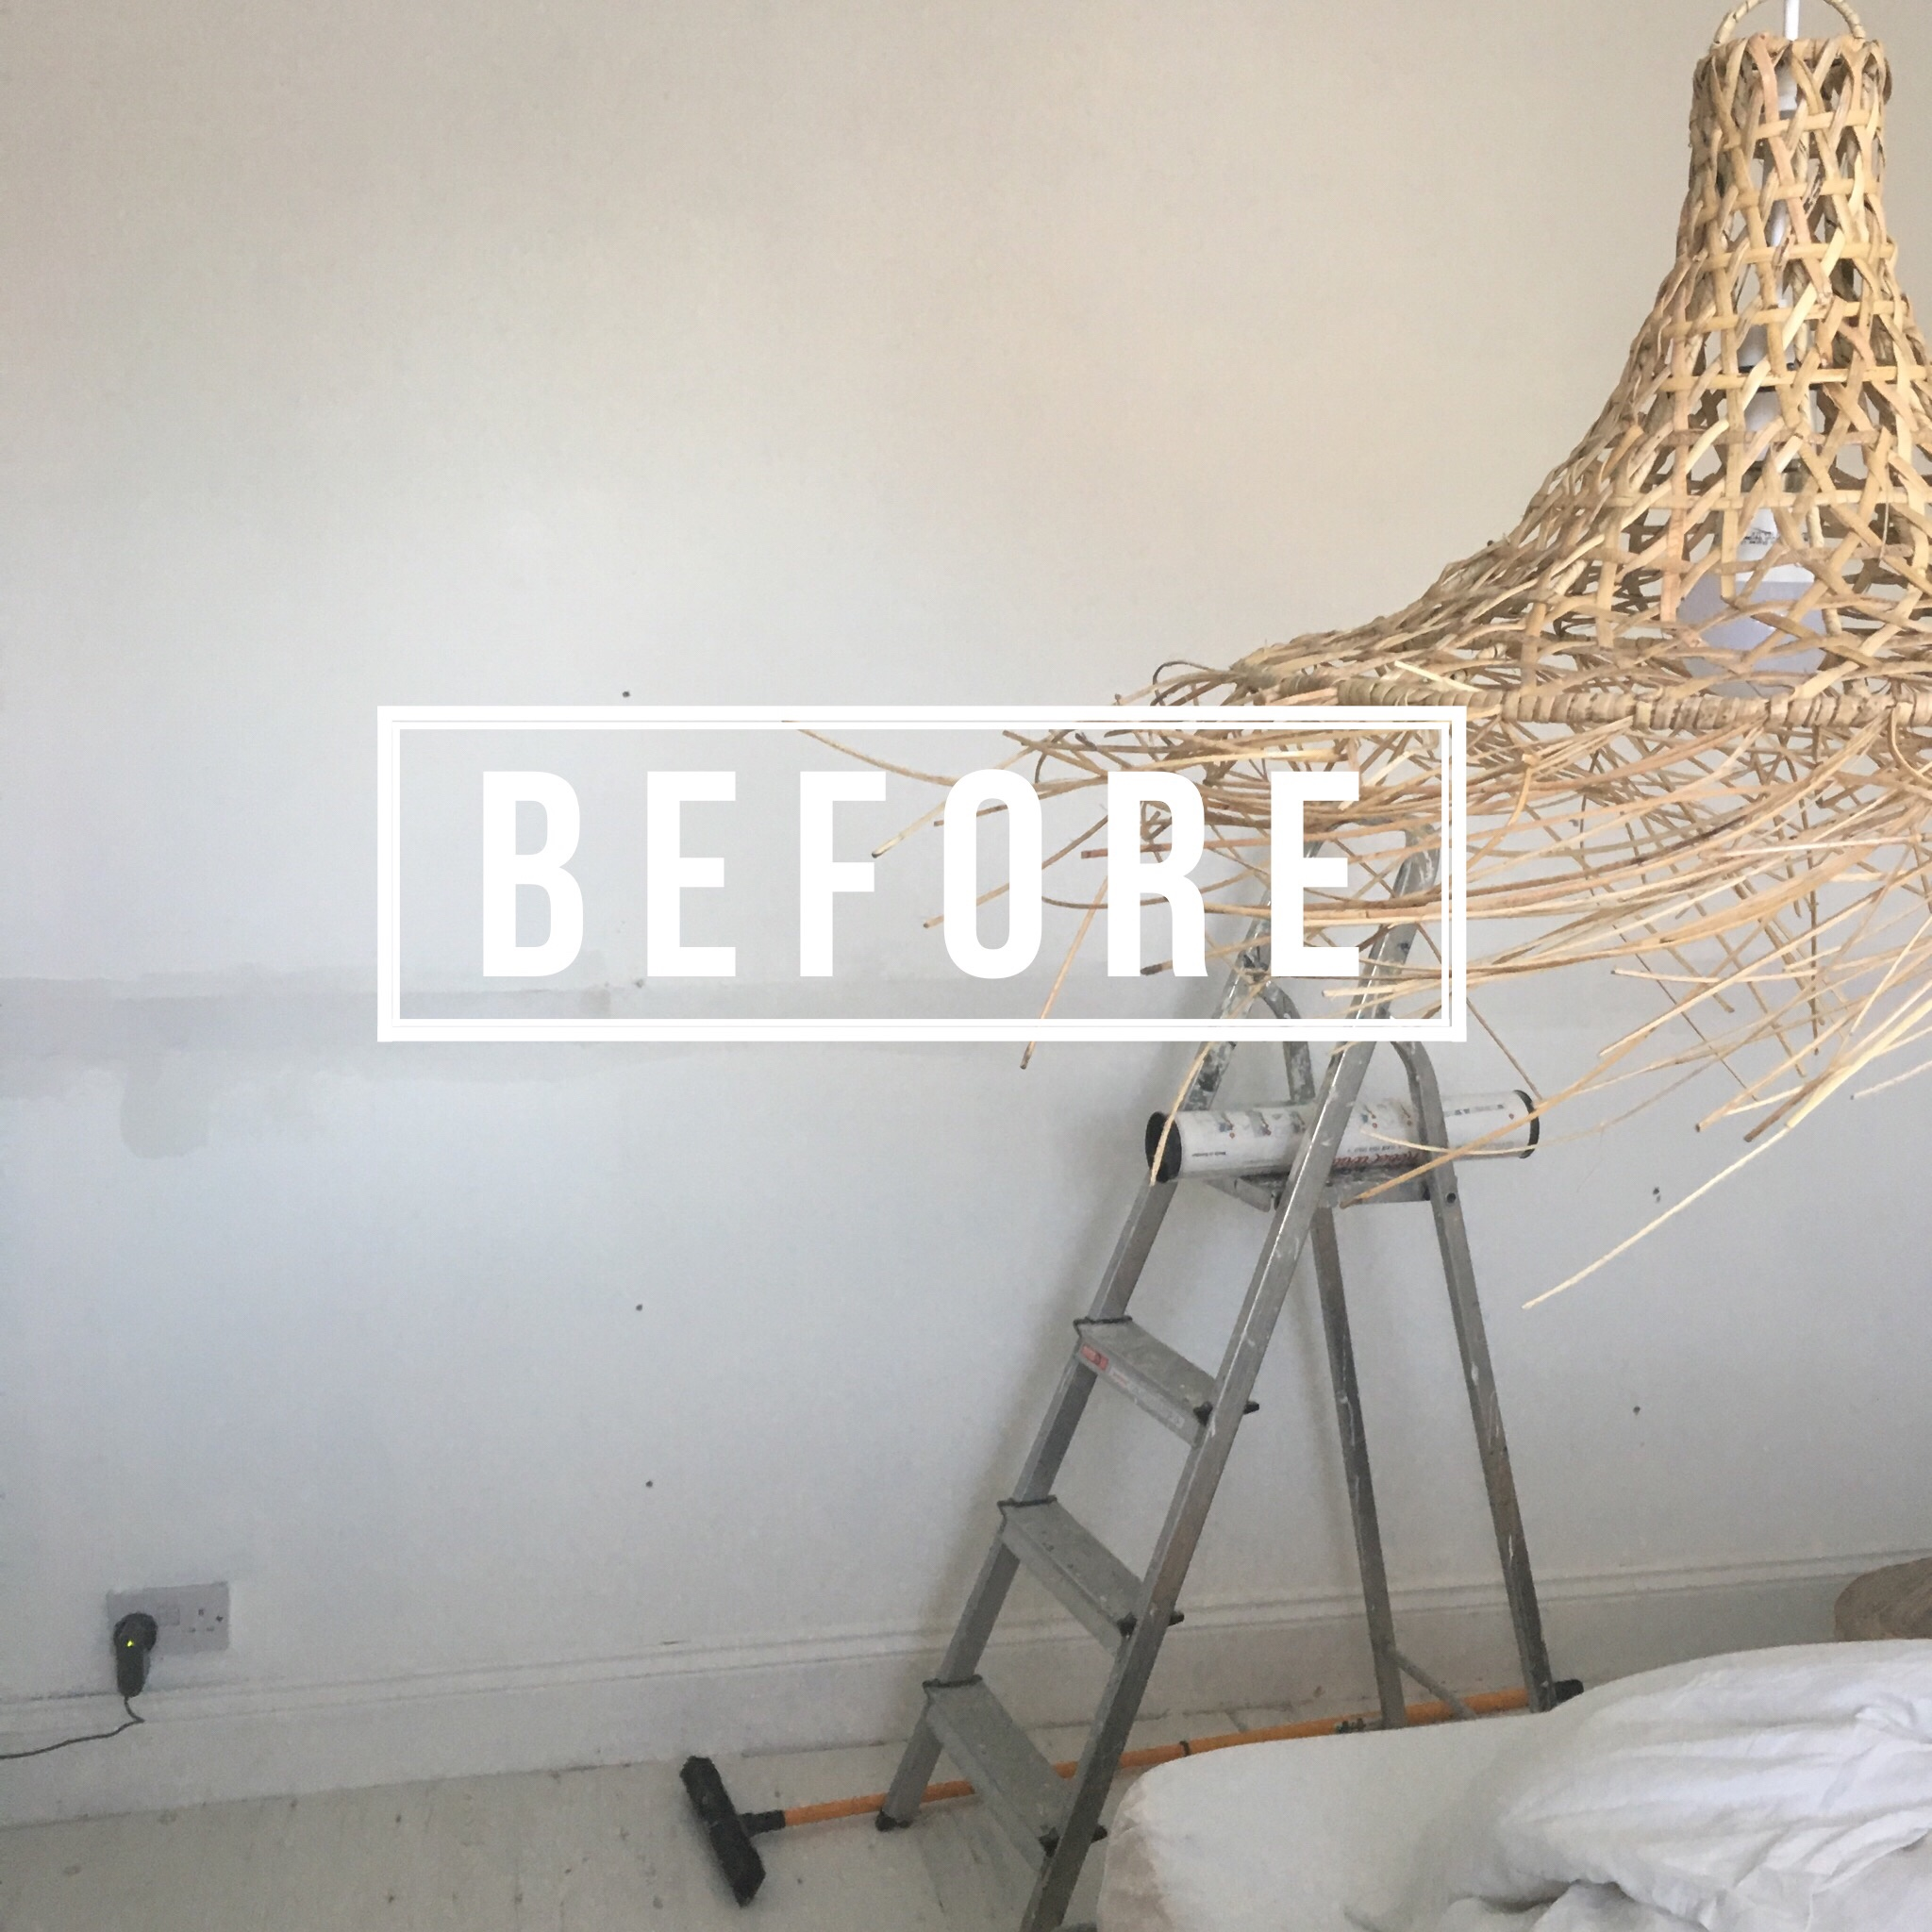 Let me show you how I transformed my bedroom in less than two hours with my new mural from Rebel Walls. Big impact in no time at all!